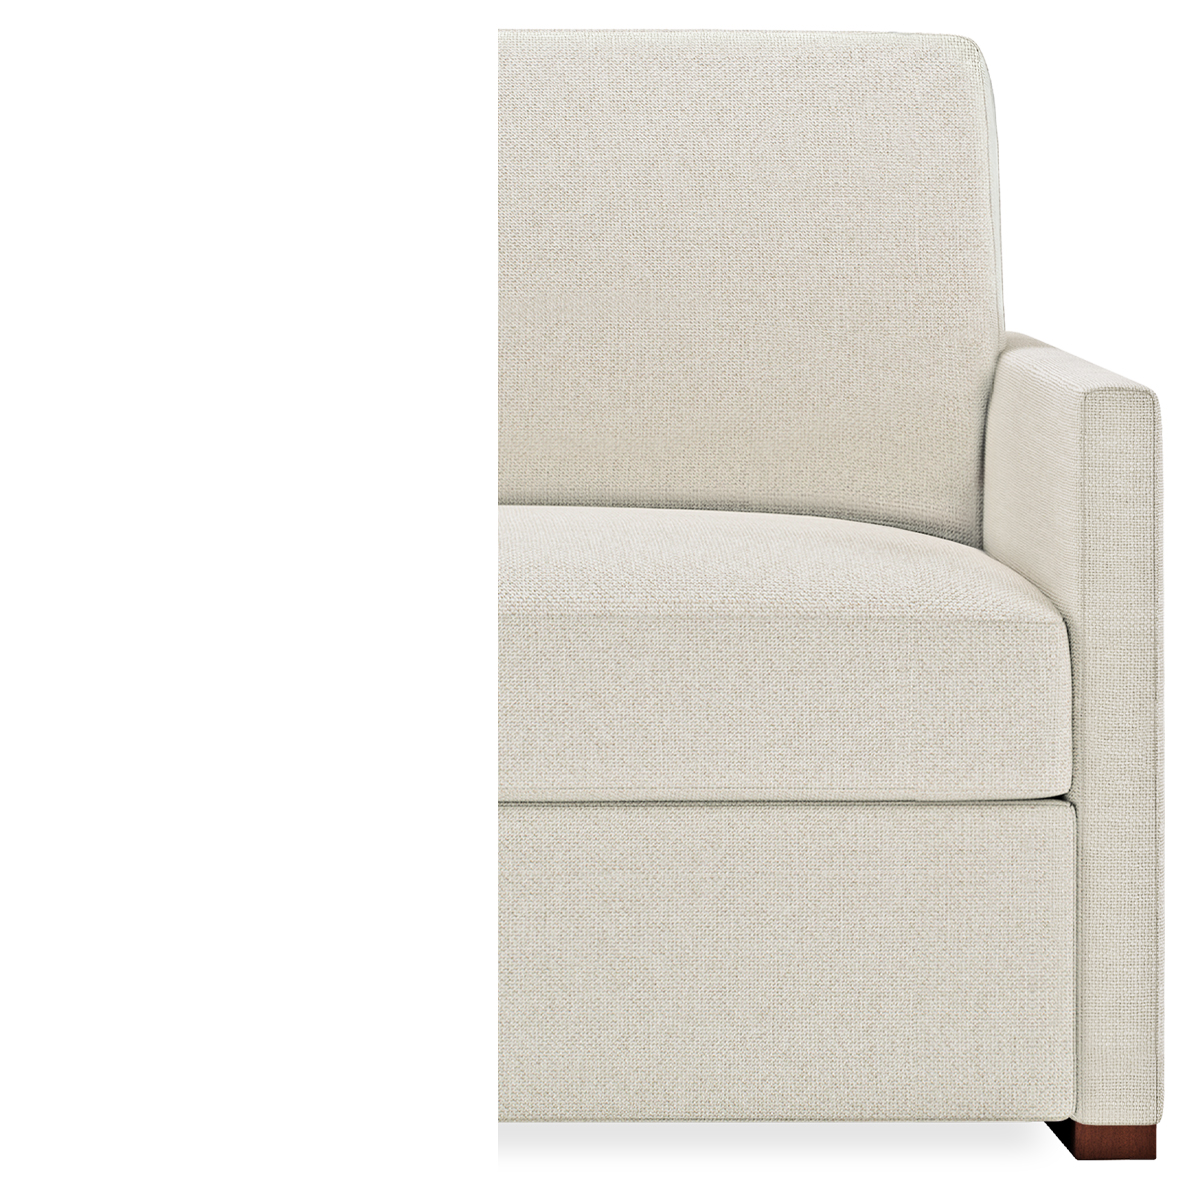 American Leather Pearson Comfort Sleeper--clean, simple, stylish